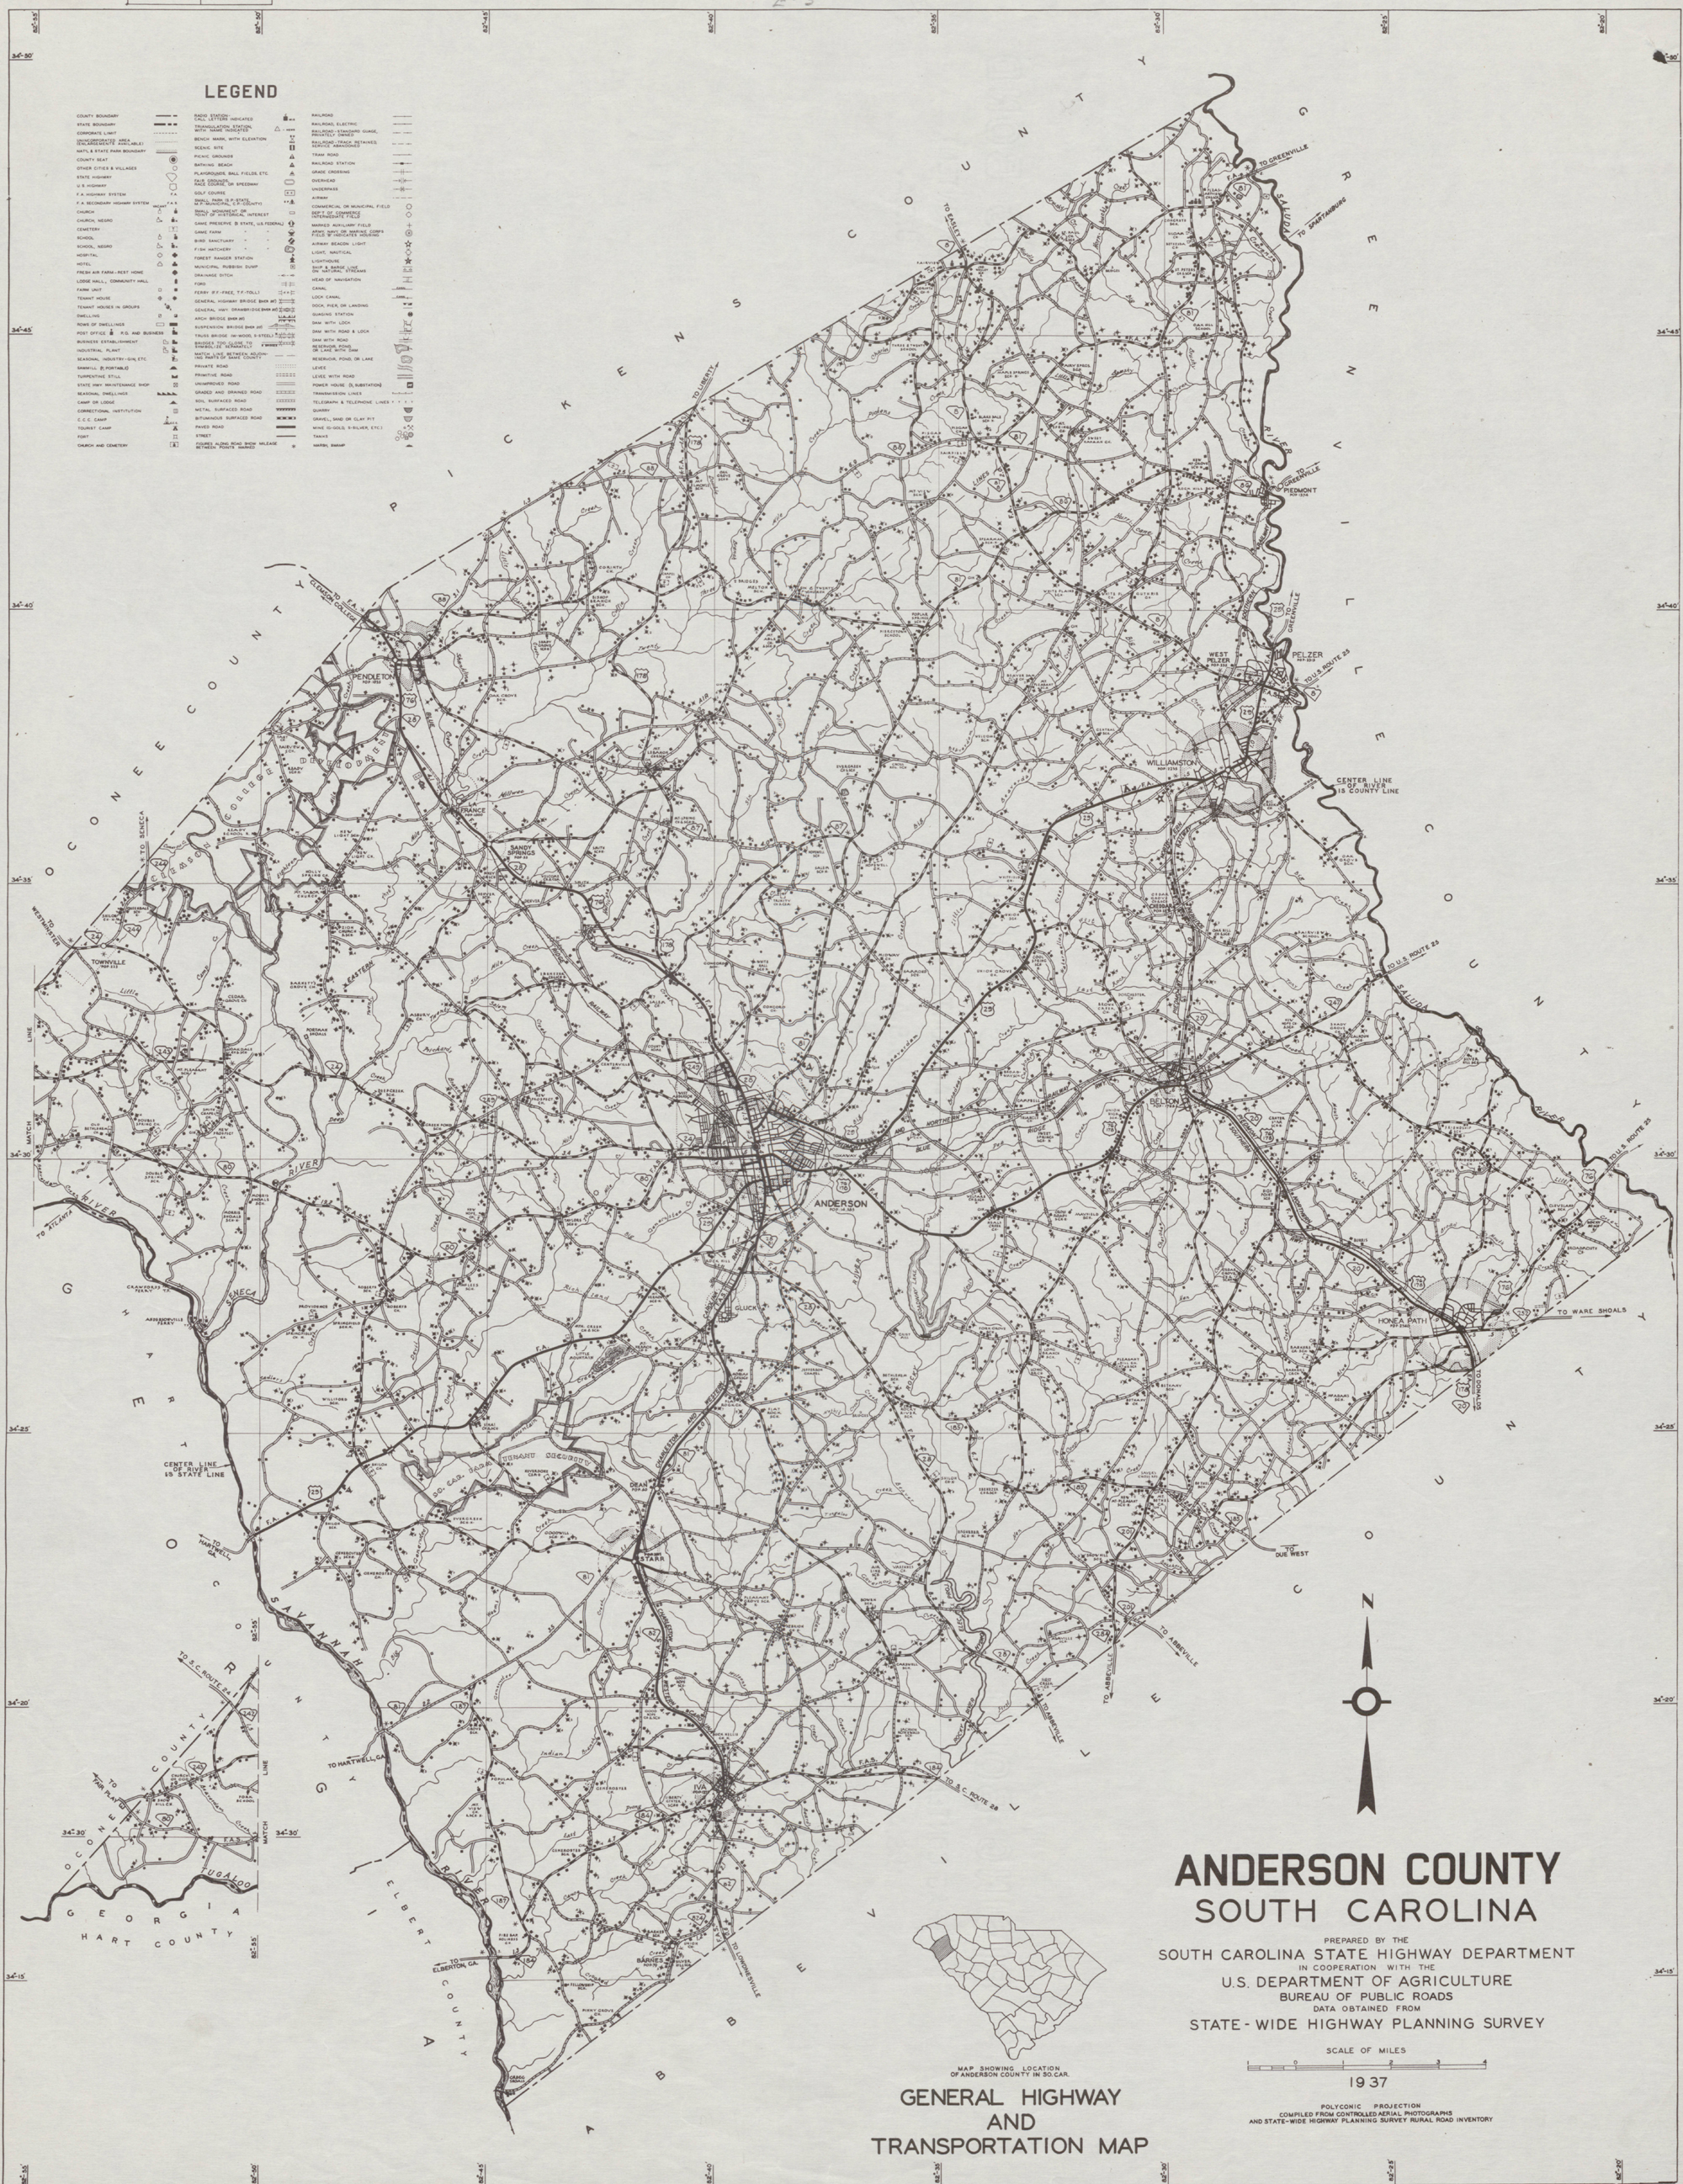 1937 Road Map of Anderson County, South Carolina Sc Road Map on sc airport map, sc railway map, sc island map, sc town map, sc agriculture map, downtown charleston sc attractions map, historic downtown charleston map, sc water map, sc route map, sc green map, sc state map, sc viper map, sc hotel map, sc interstate map, sc counties highway map, south ga cities map, sc flood maps, sc mining map, sc house map, south carolina map,